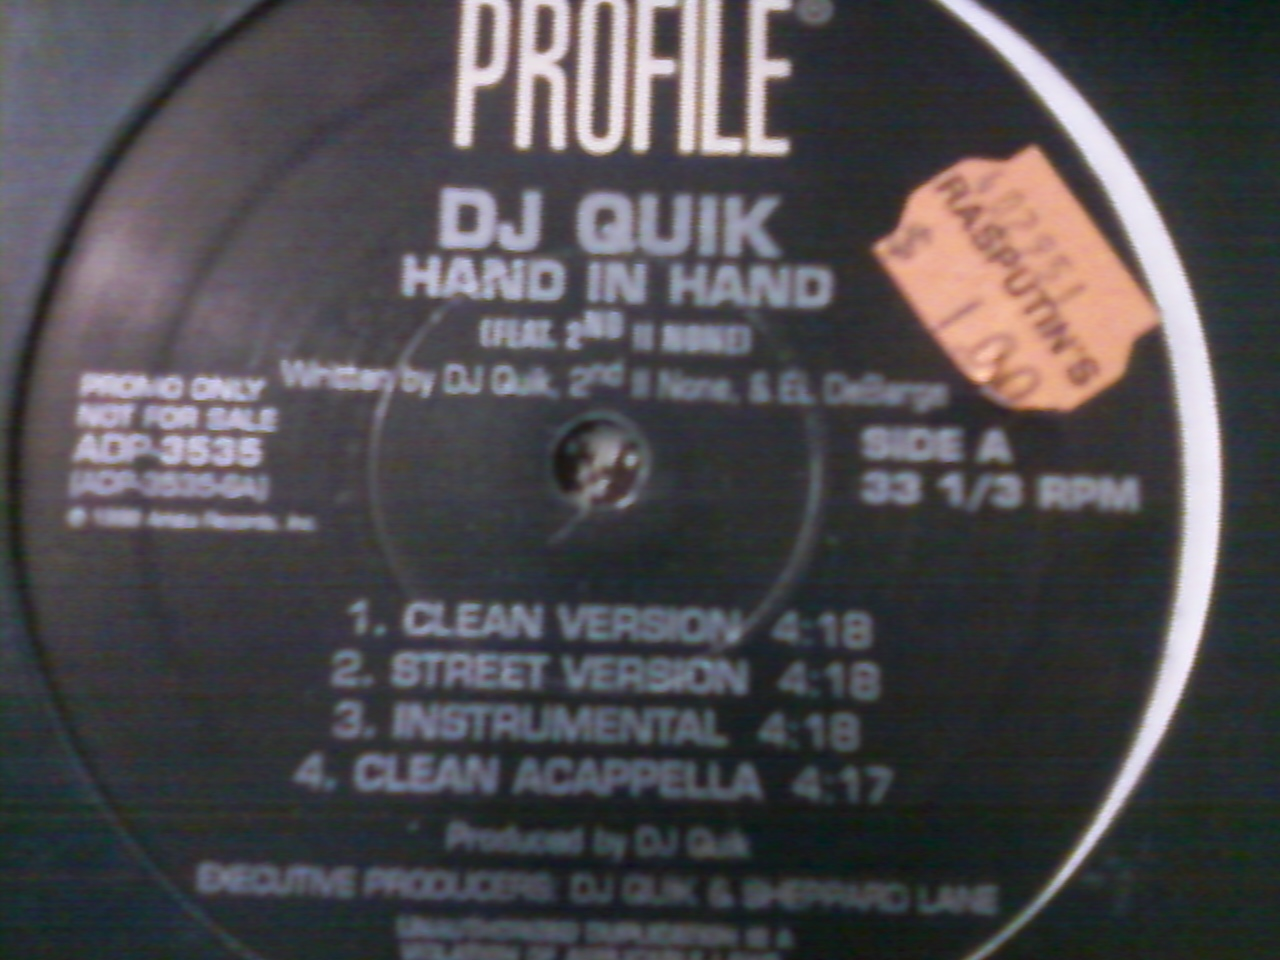 DJ Quick - Hand in Hand